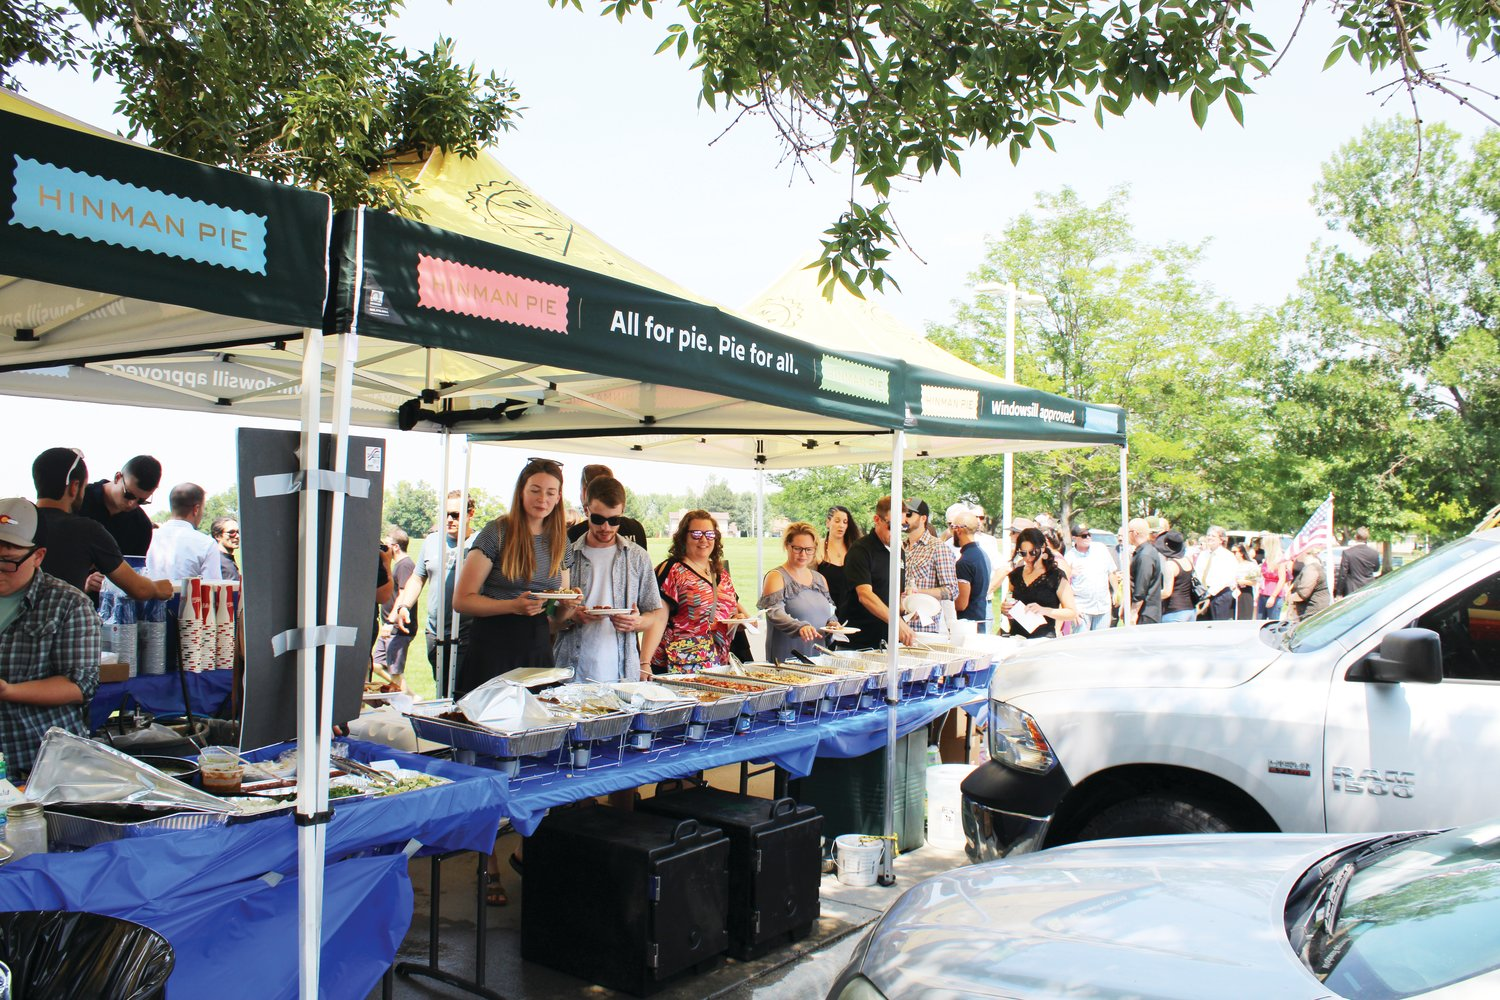 People line up for food and refreshments at the Johnny Hurley celebration of life event at Robby Ferrufino Park.